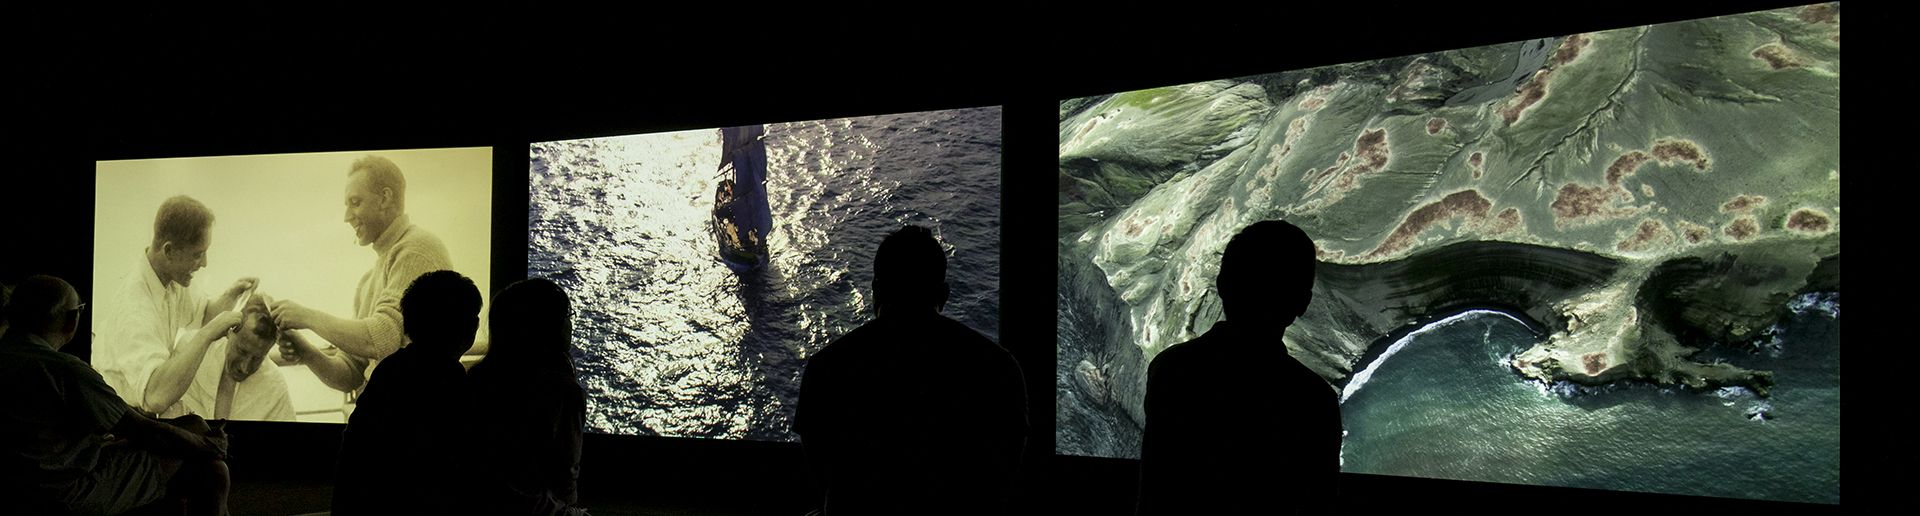 Viewers watch a three-screen video installation with scenes of water